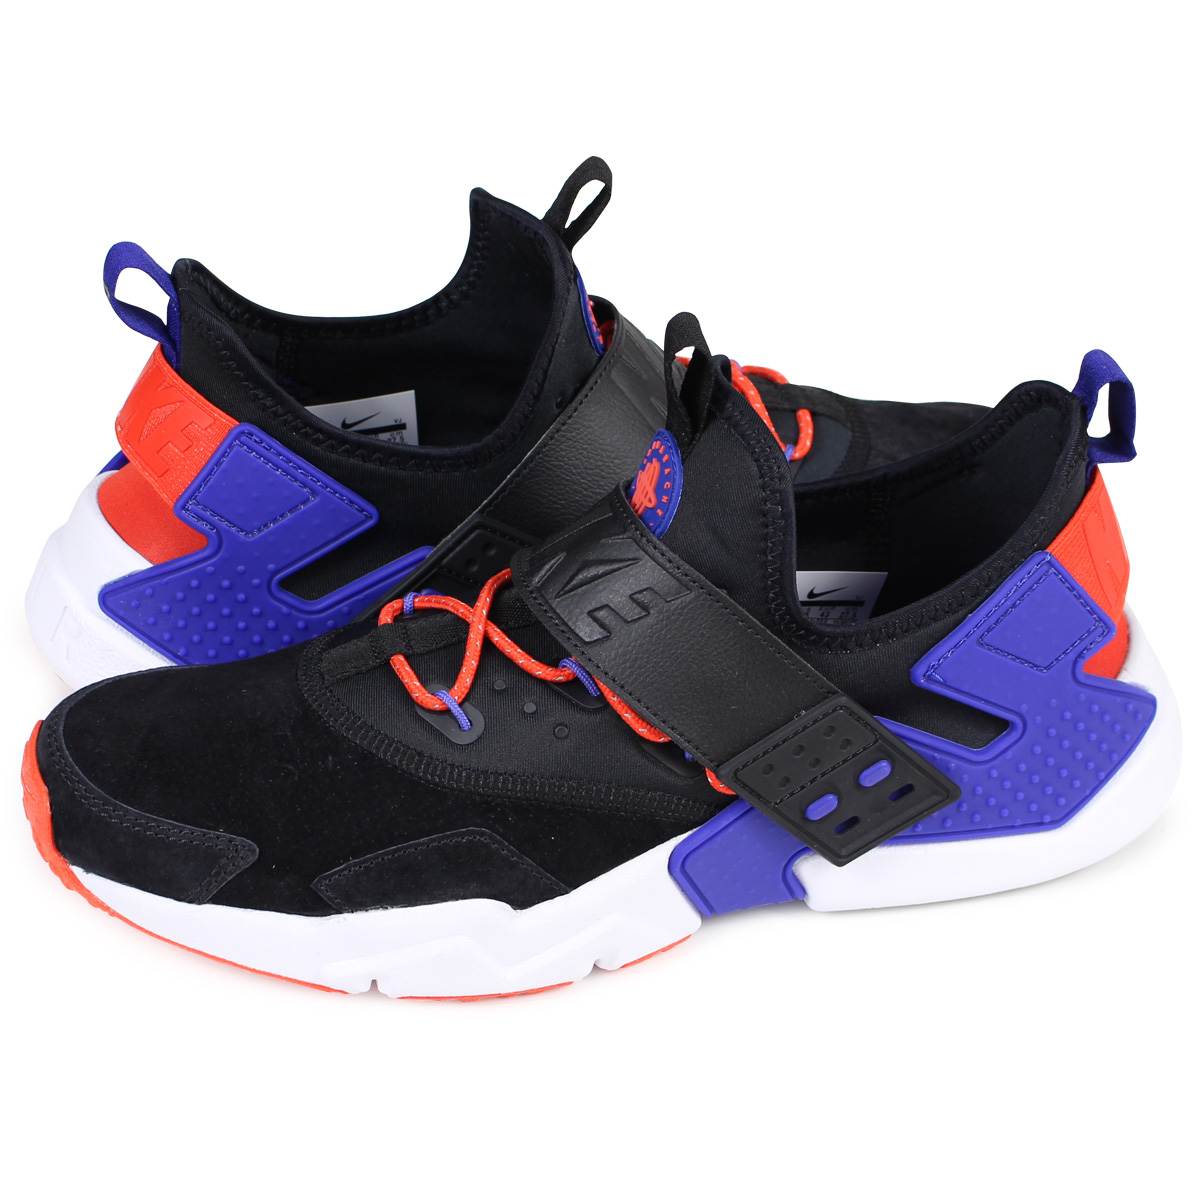 56321c82f5 NIKE AIR HUARACHE DRIFT PREMIUM ナイキエアハラチドリフトスニーカー AH7335-002 men black  [load ...